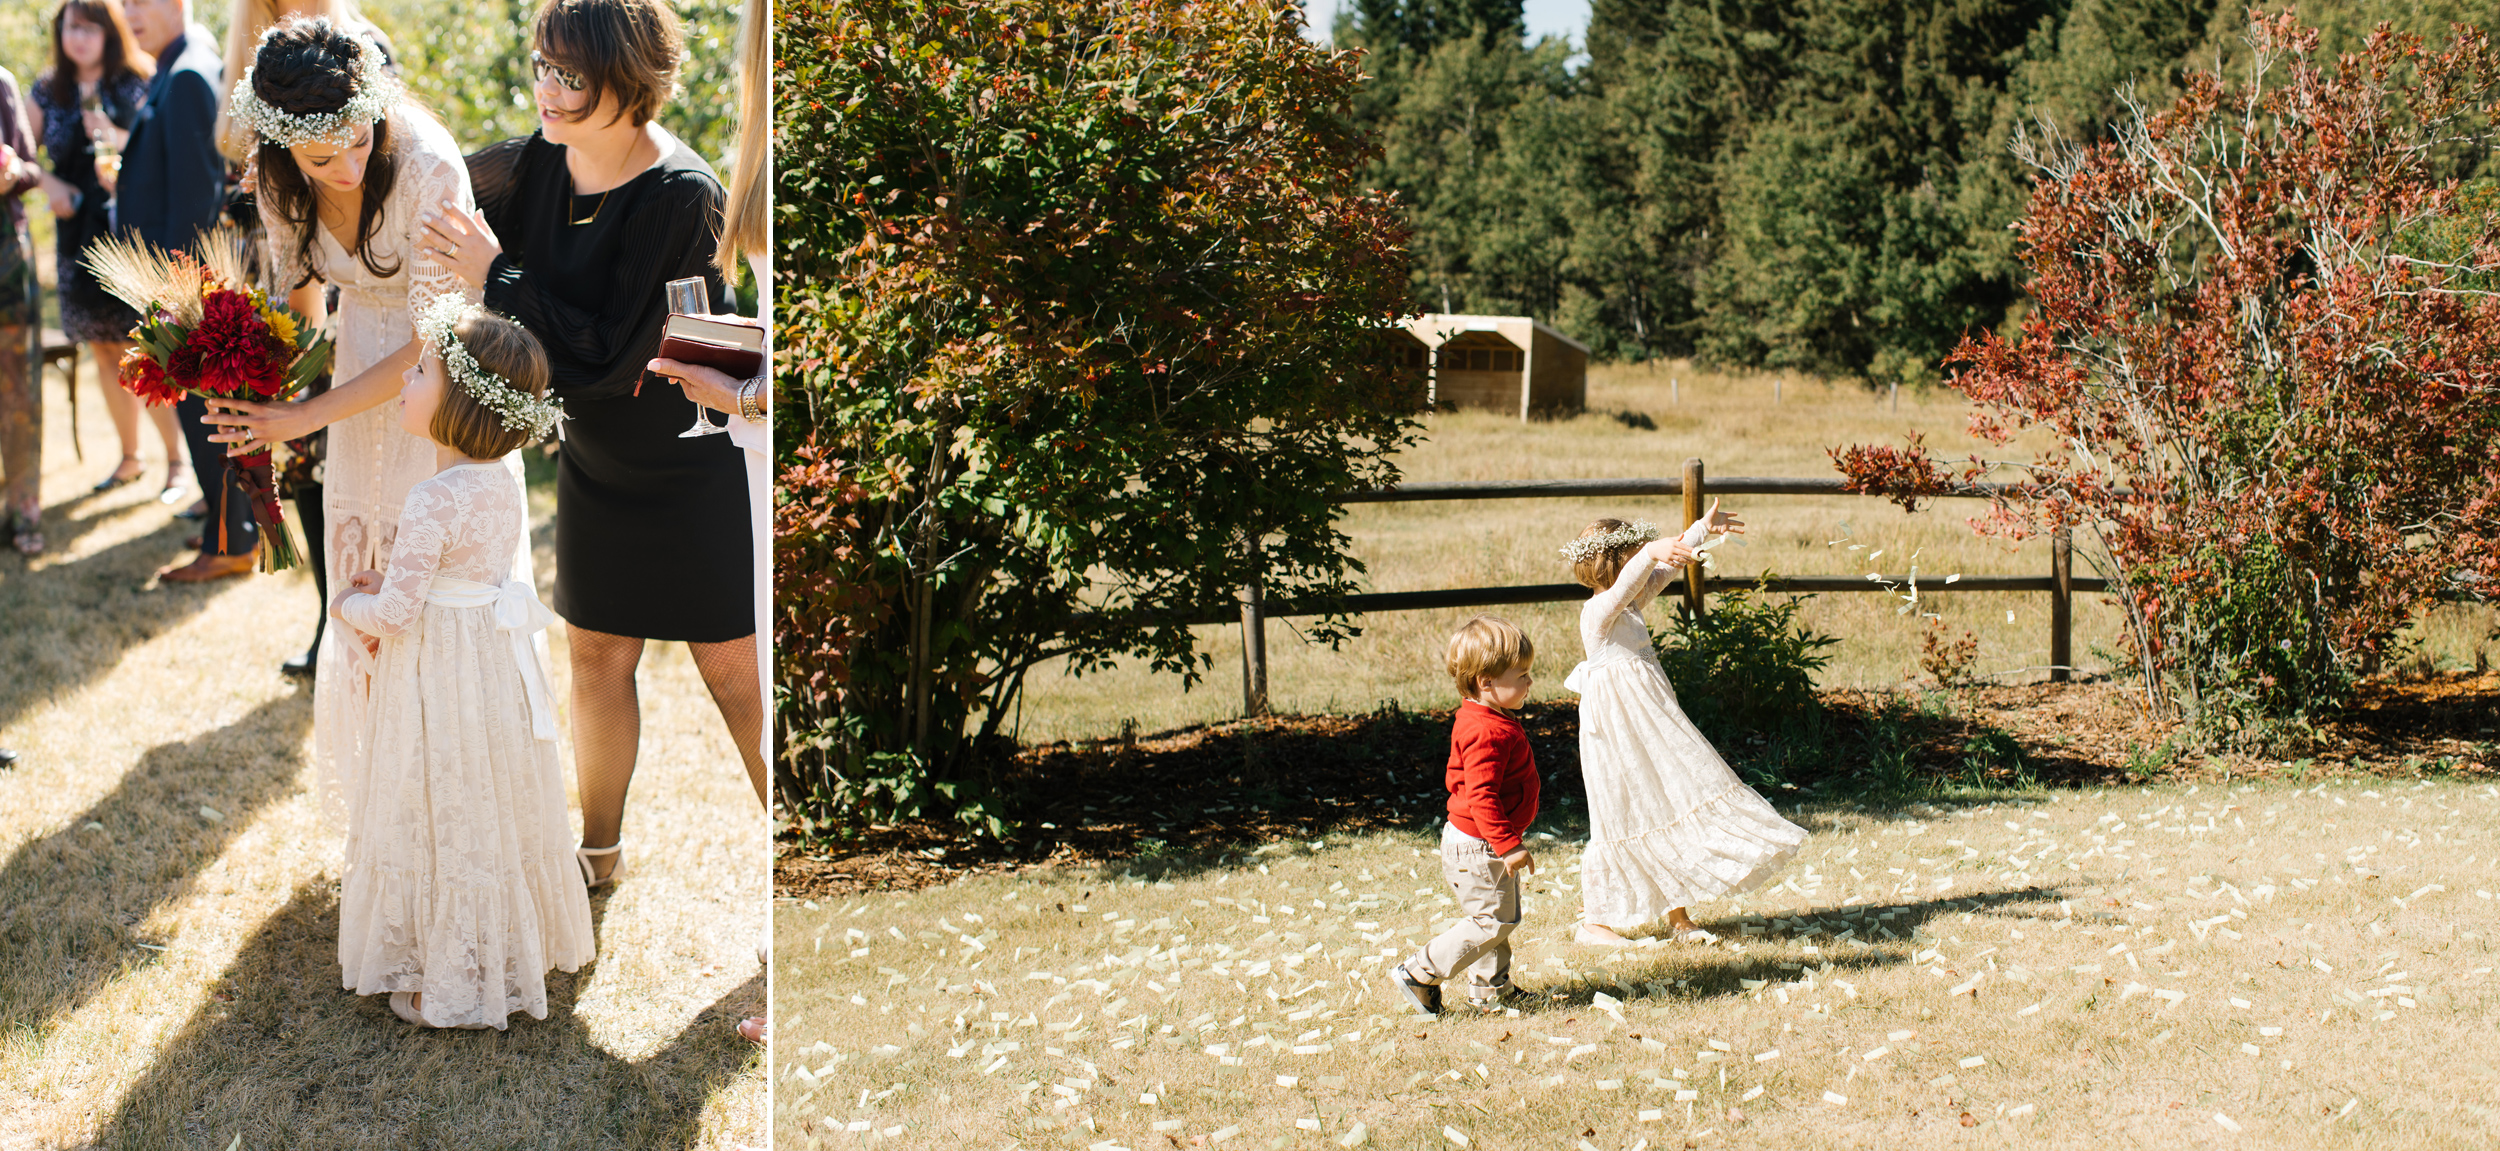 Calgary_Intimate_Backyard_Wedding0016.jpg